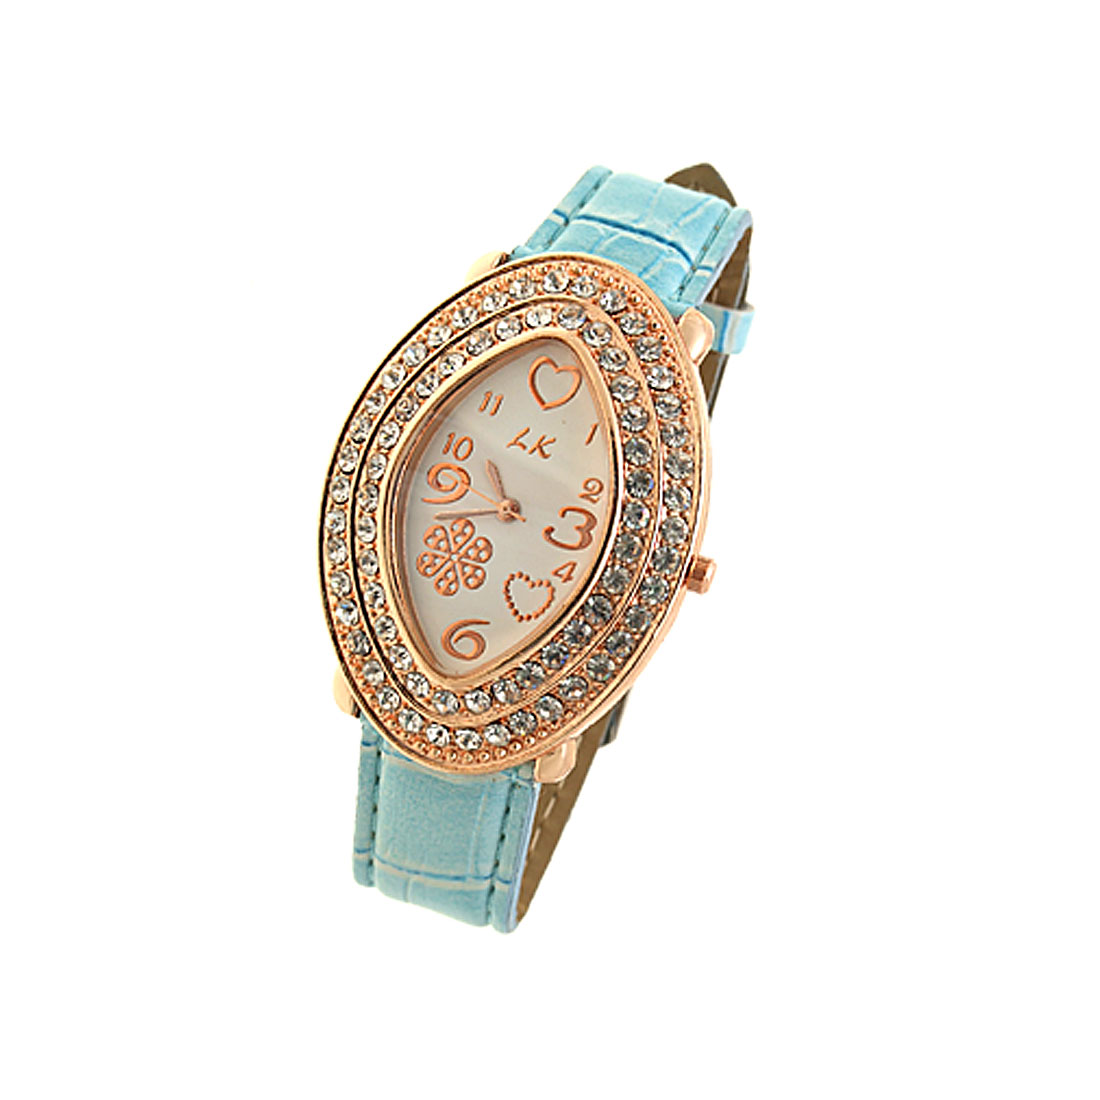 Fashion Cyan Leather Watchband Oval Golden Watch Case Ladies' Wrist Watch